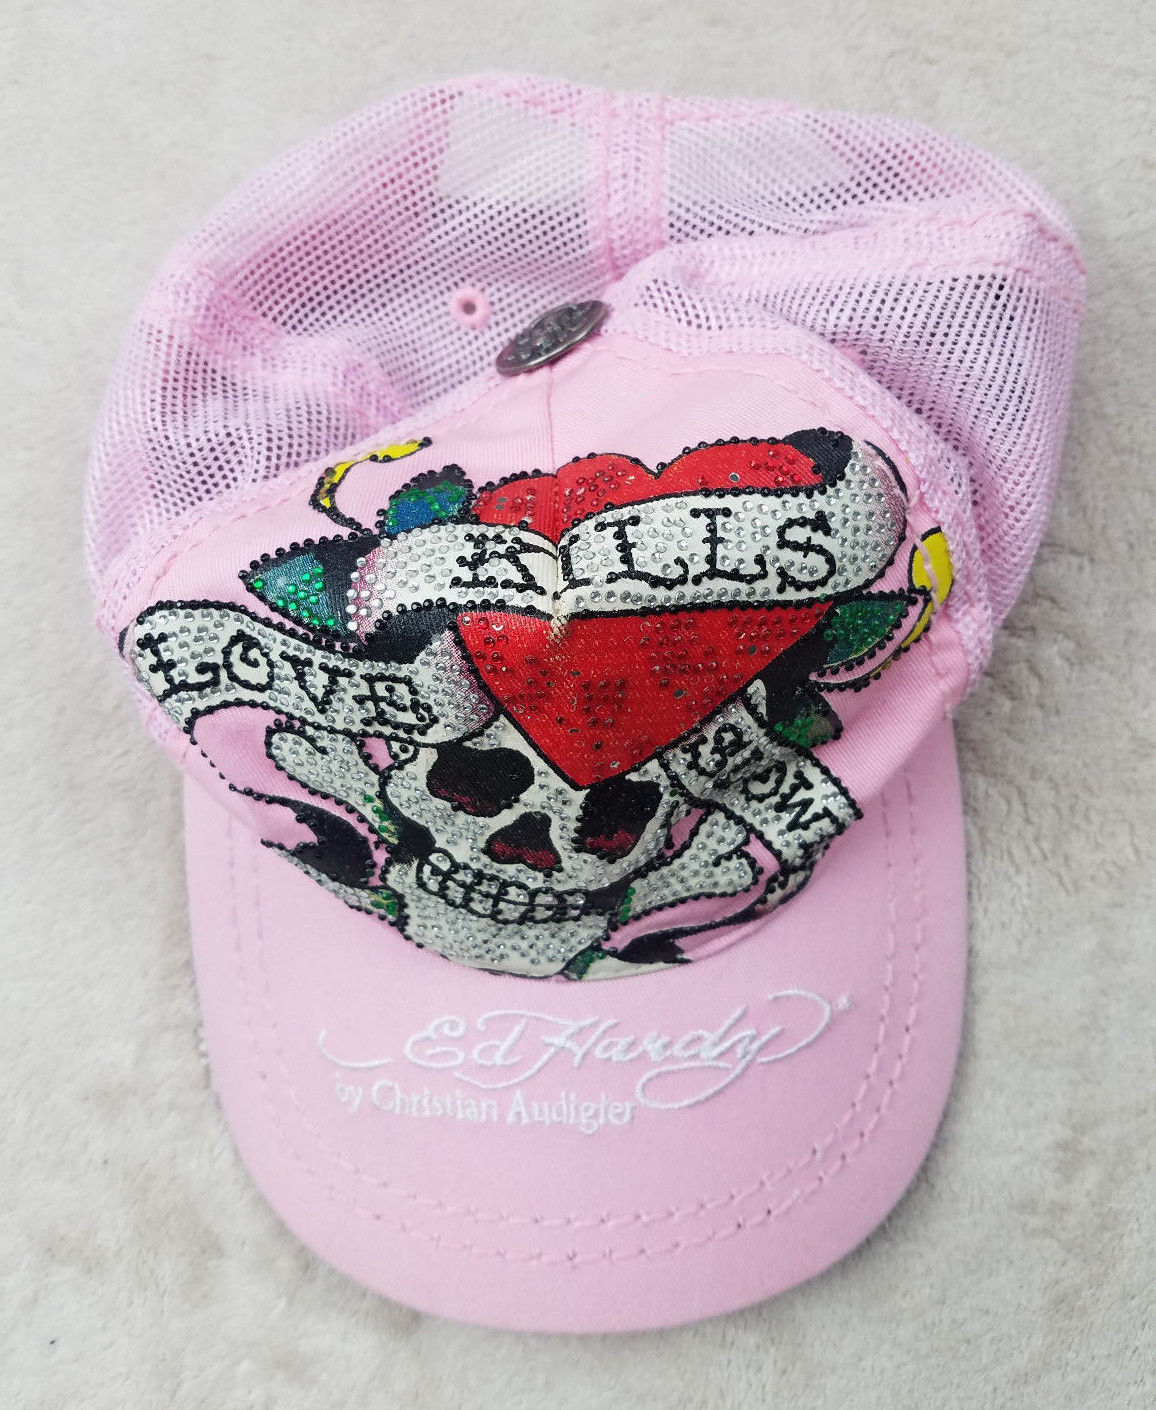 cdebbcce0 Ed Hardy Womens Pink Trucker Hat Cap and 50 similar items. 57